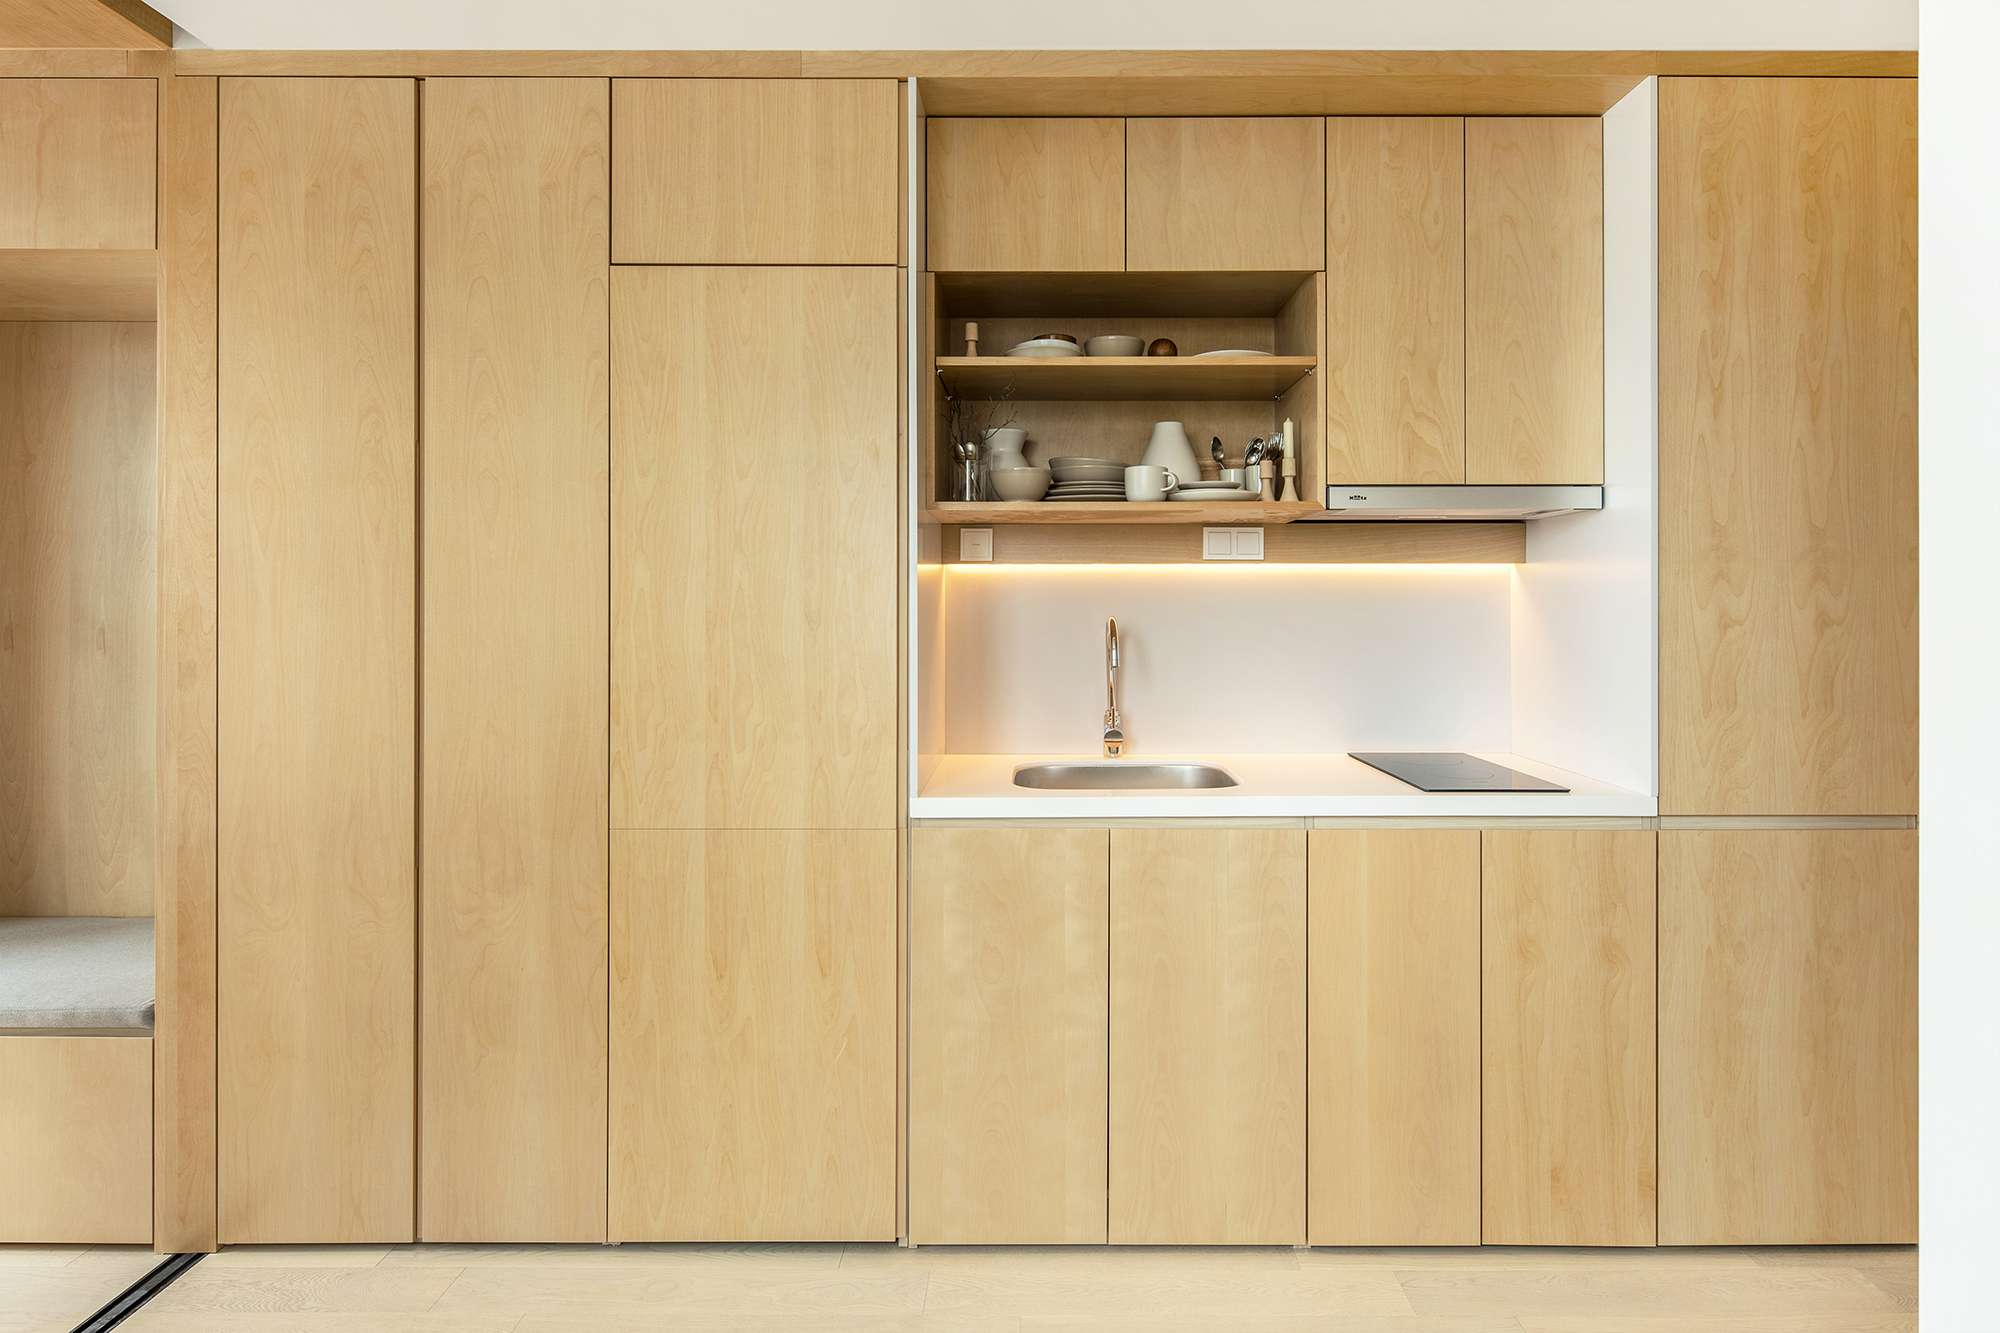 LIFE micro-apartments coliving Ian Lee kitchen